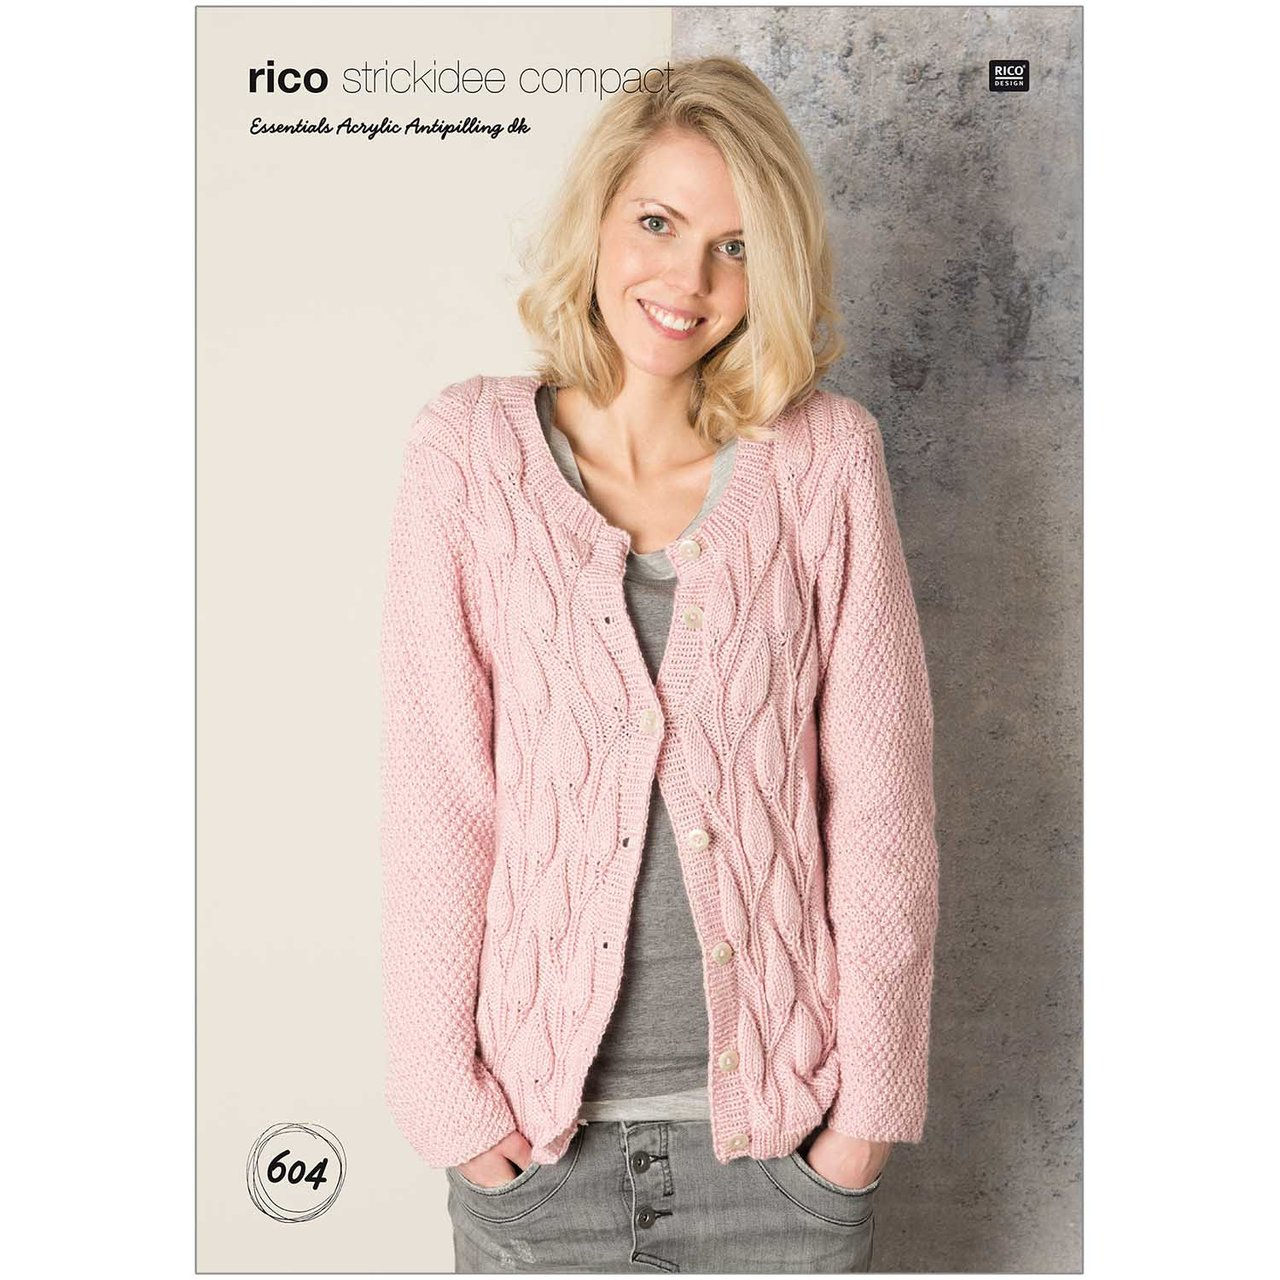 Rico  Strickidee compact Nr.604 Essential Acrylic Antipilling